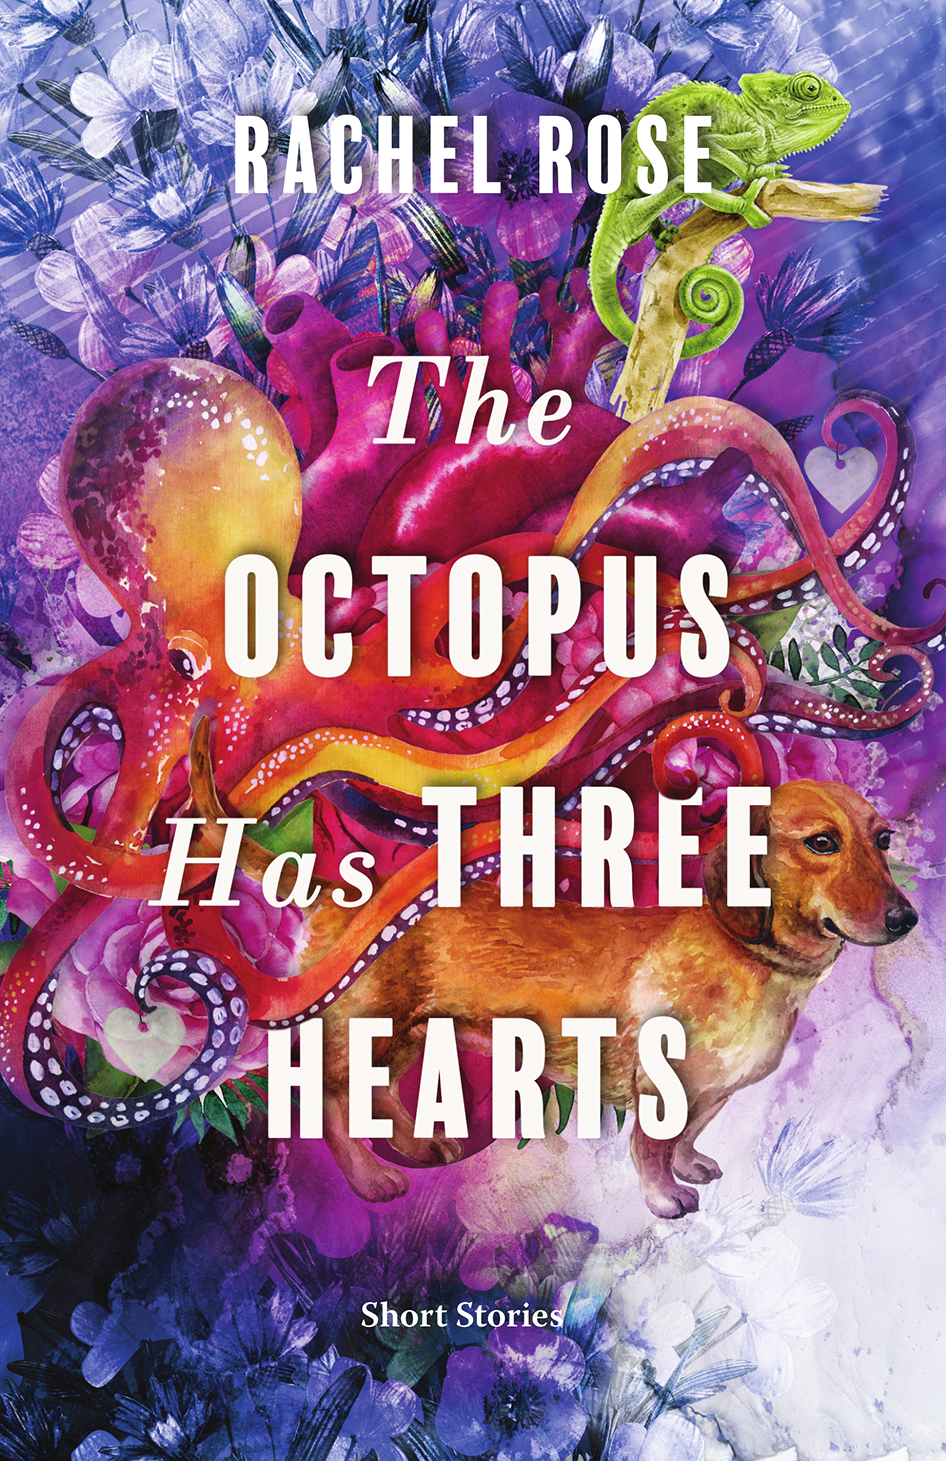 The Octopus Has Three Hearts by Rachel Rose